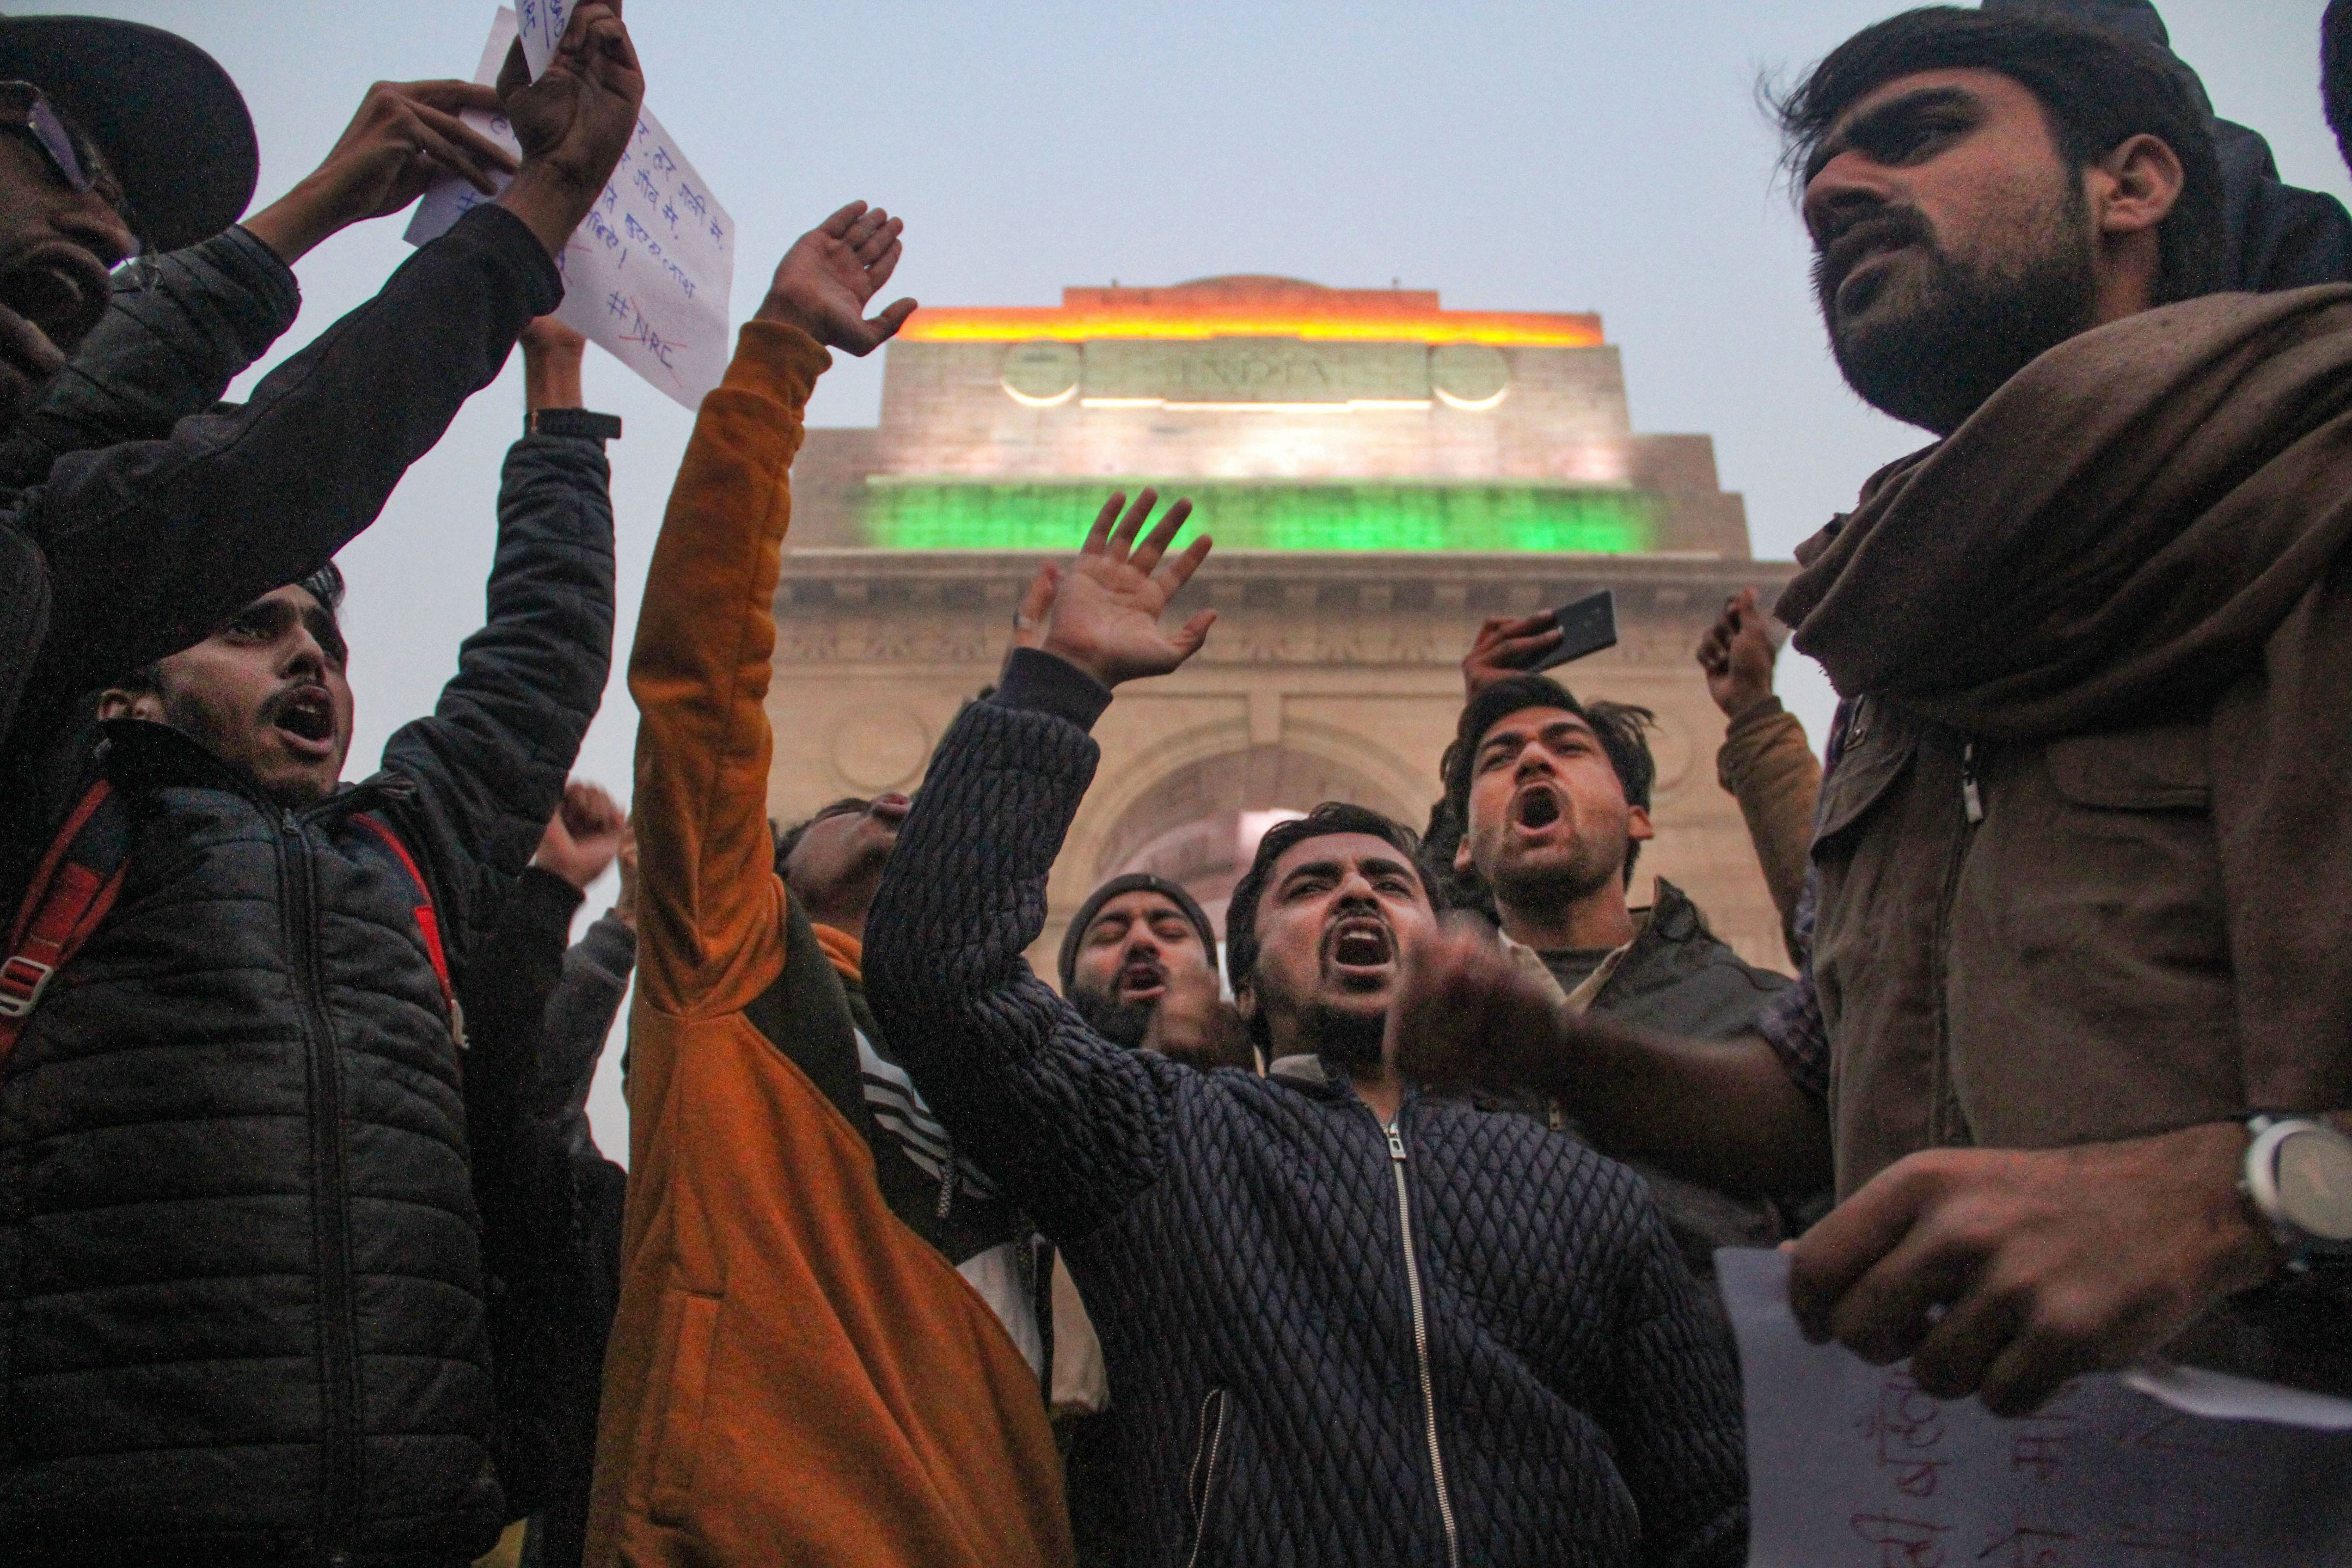 Protesters raise slogans during a demonstration against the Citizenship (Amendment) Act (CAA) in New Delhi, Friday, December 20, 2019.